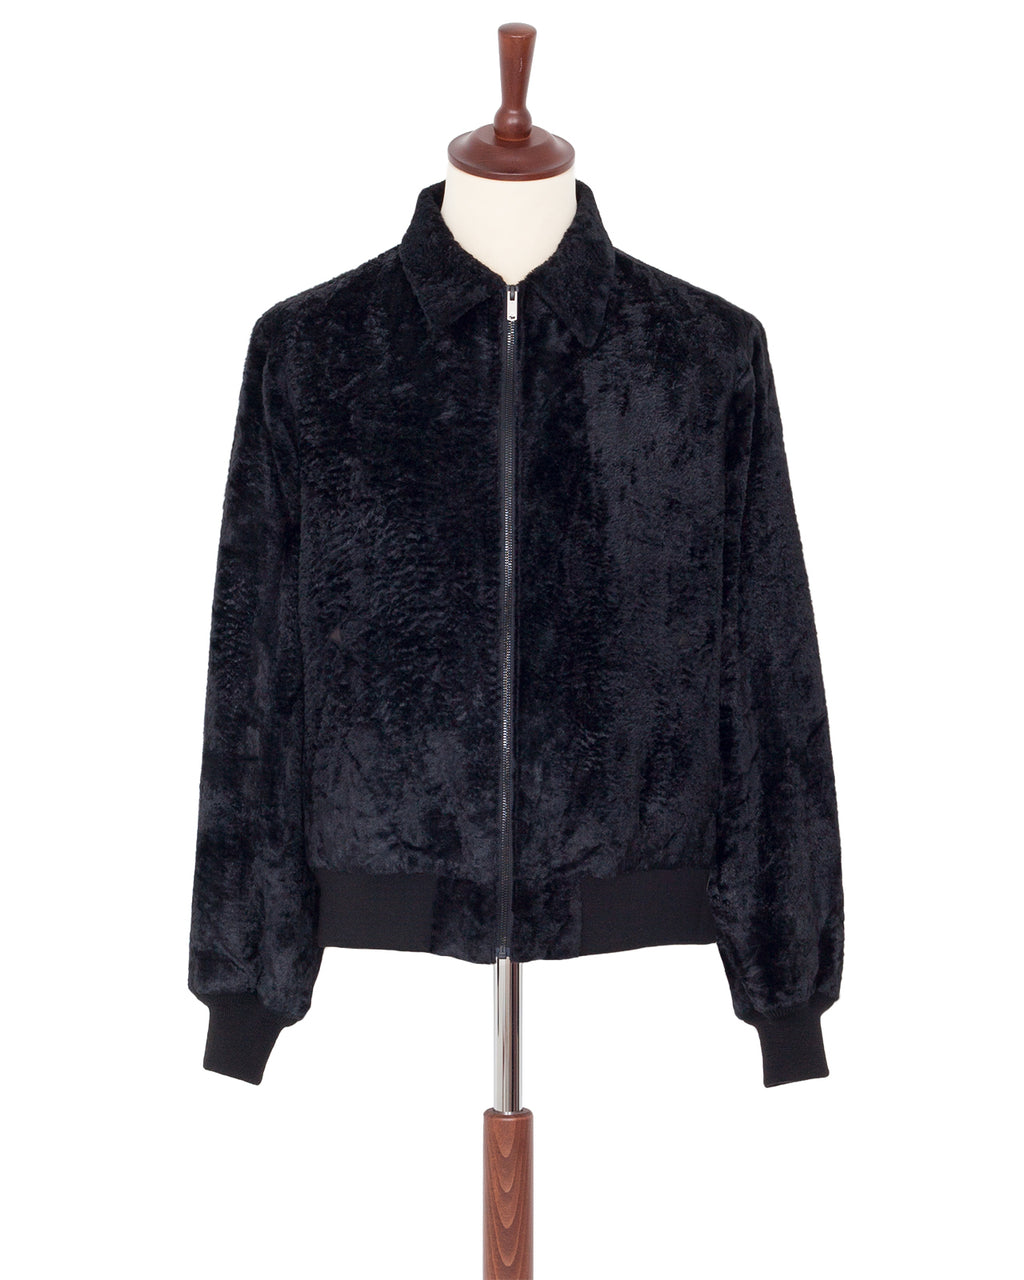 The Letters Zip Rib Blouson, Fake Fur